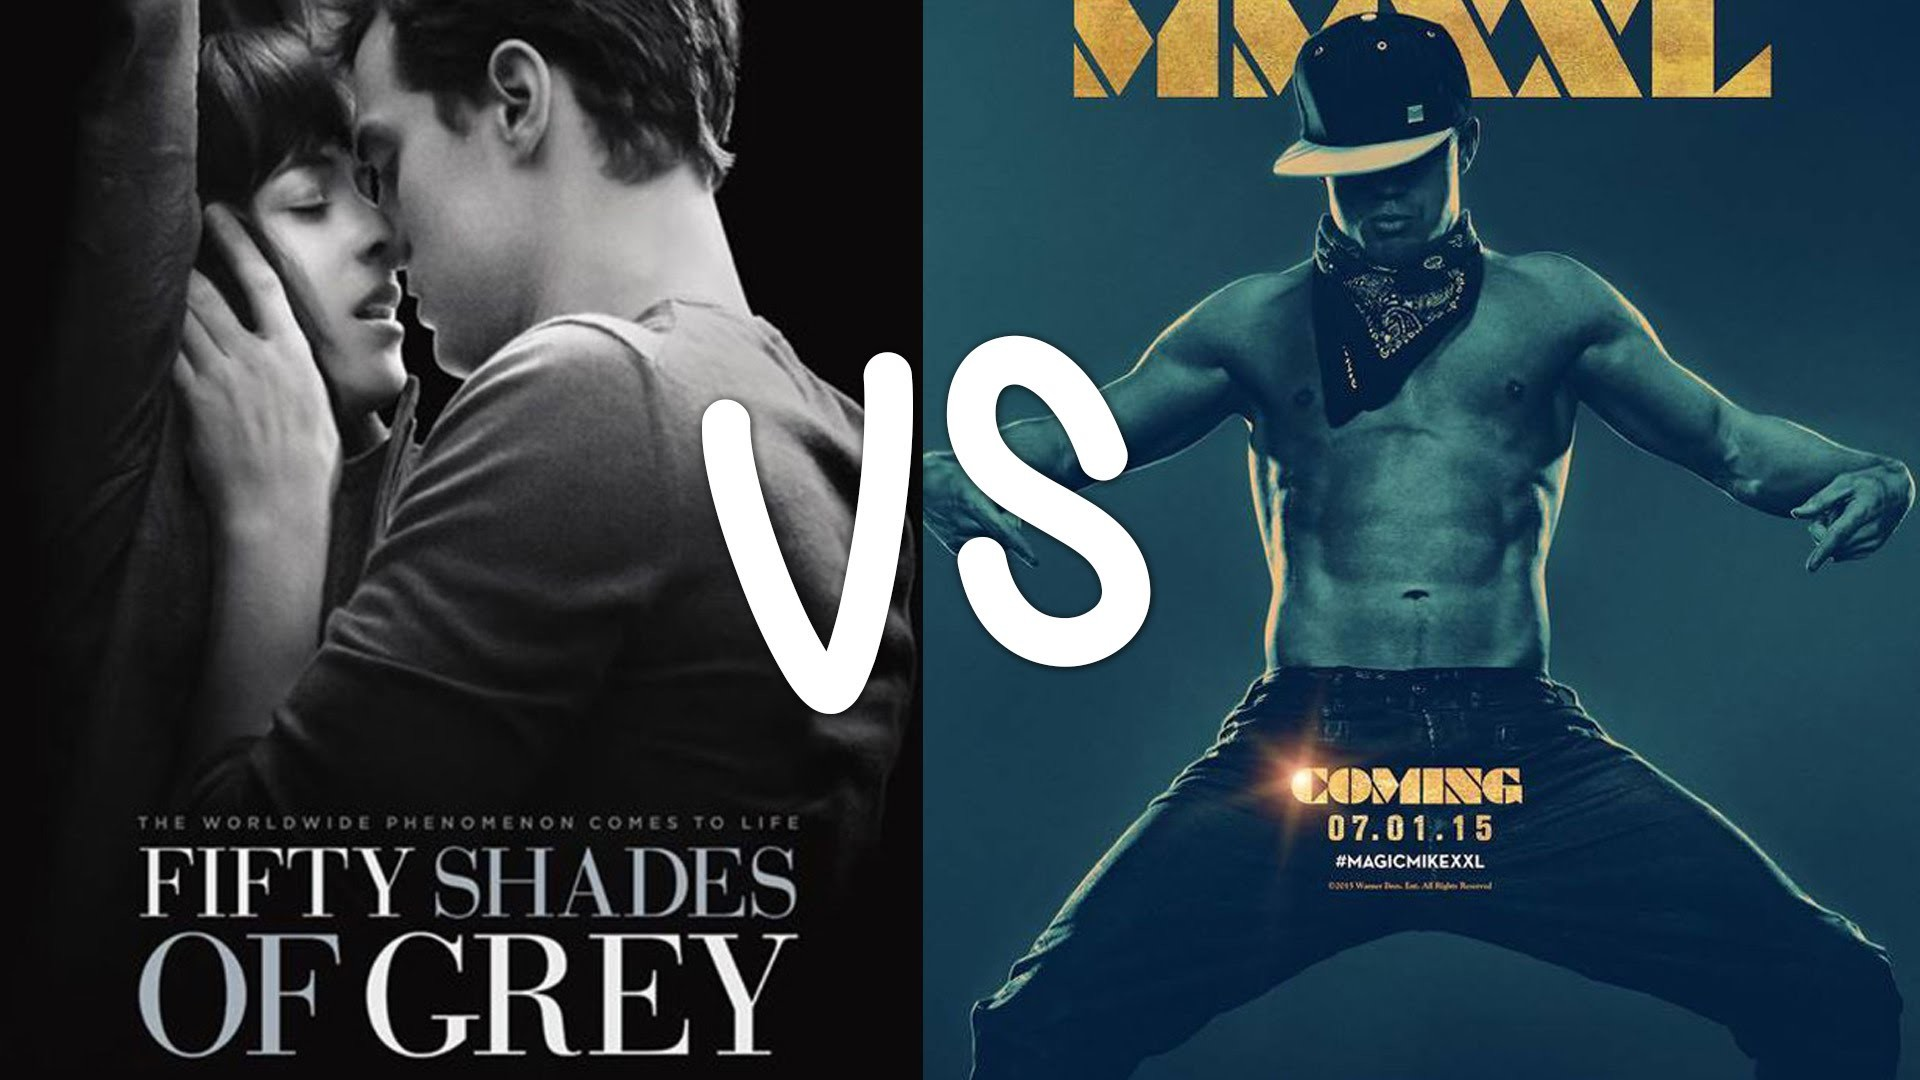 Fifty Shades of Grey VS Magic Mike XXL At the Grammys